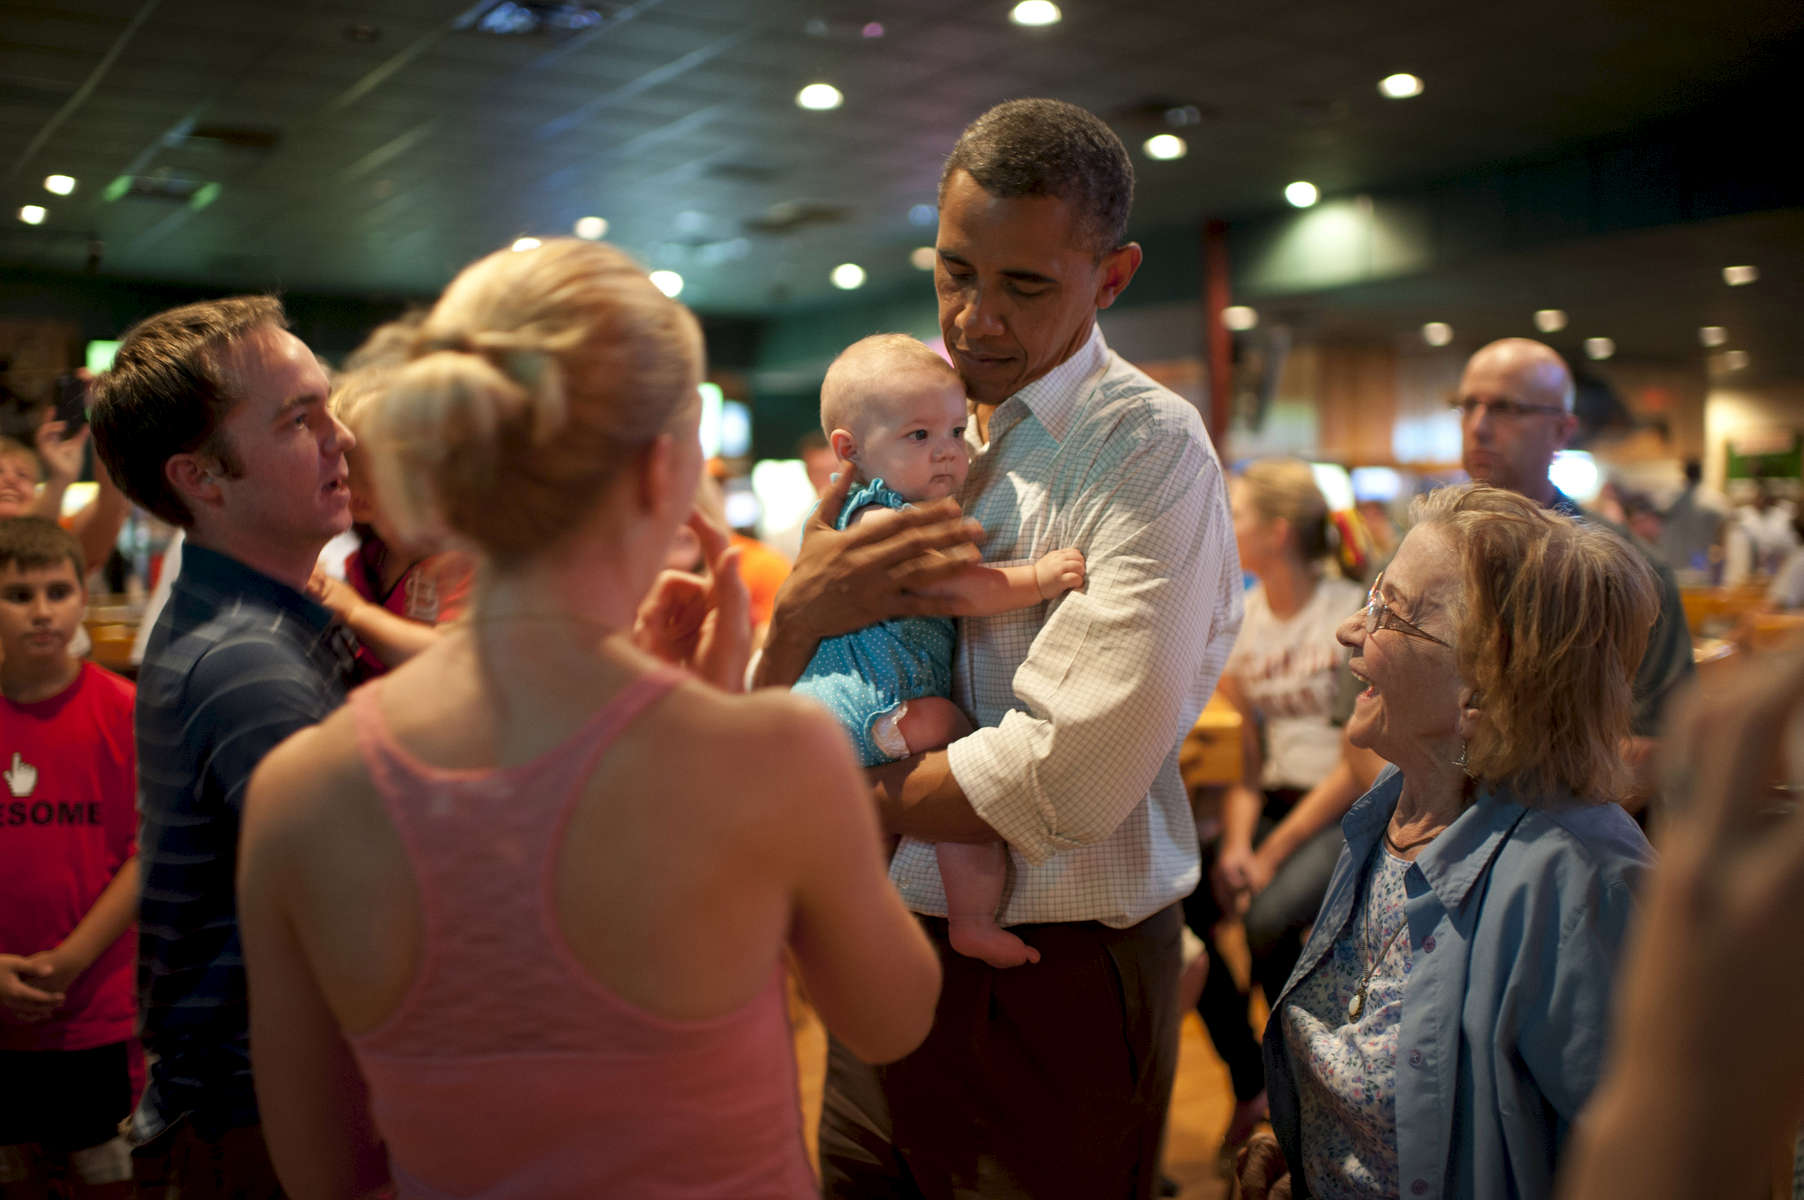 September 8th, 2012 - Orlando, FL: President Barack Obama holds a small baby at Gator's Dockside sports bar in Orlando, FL. (Scout Tufankjian for Obama for America/Polaris)